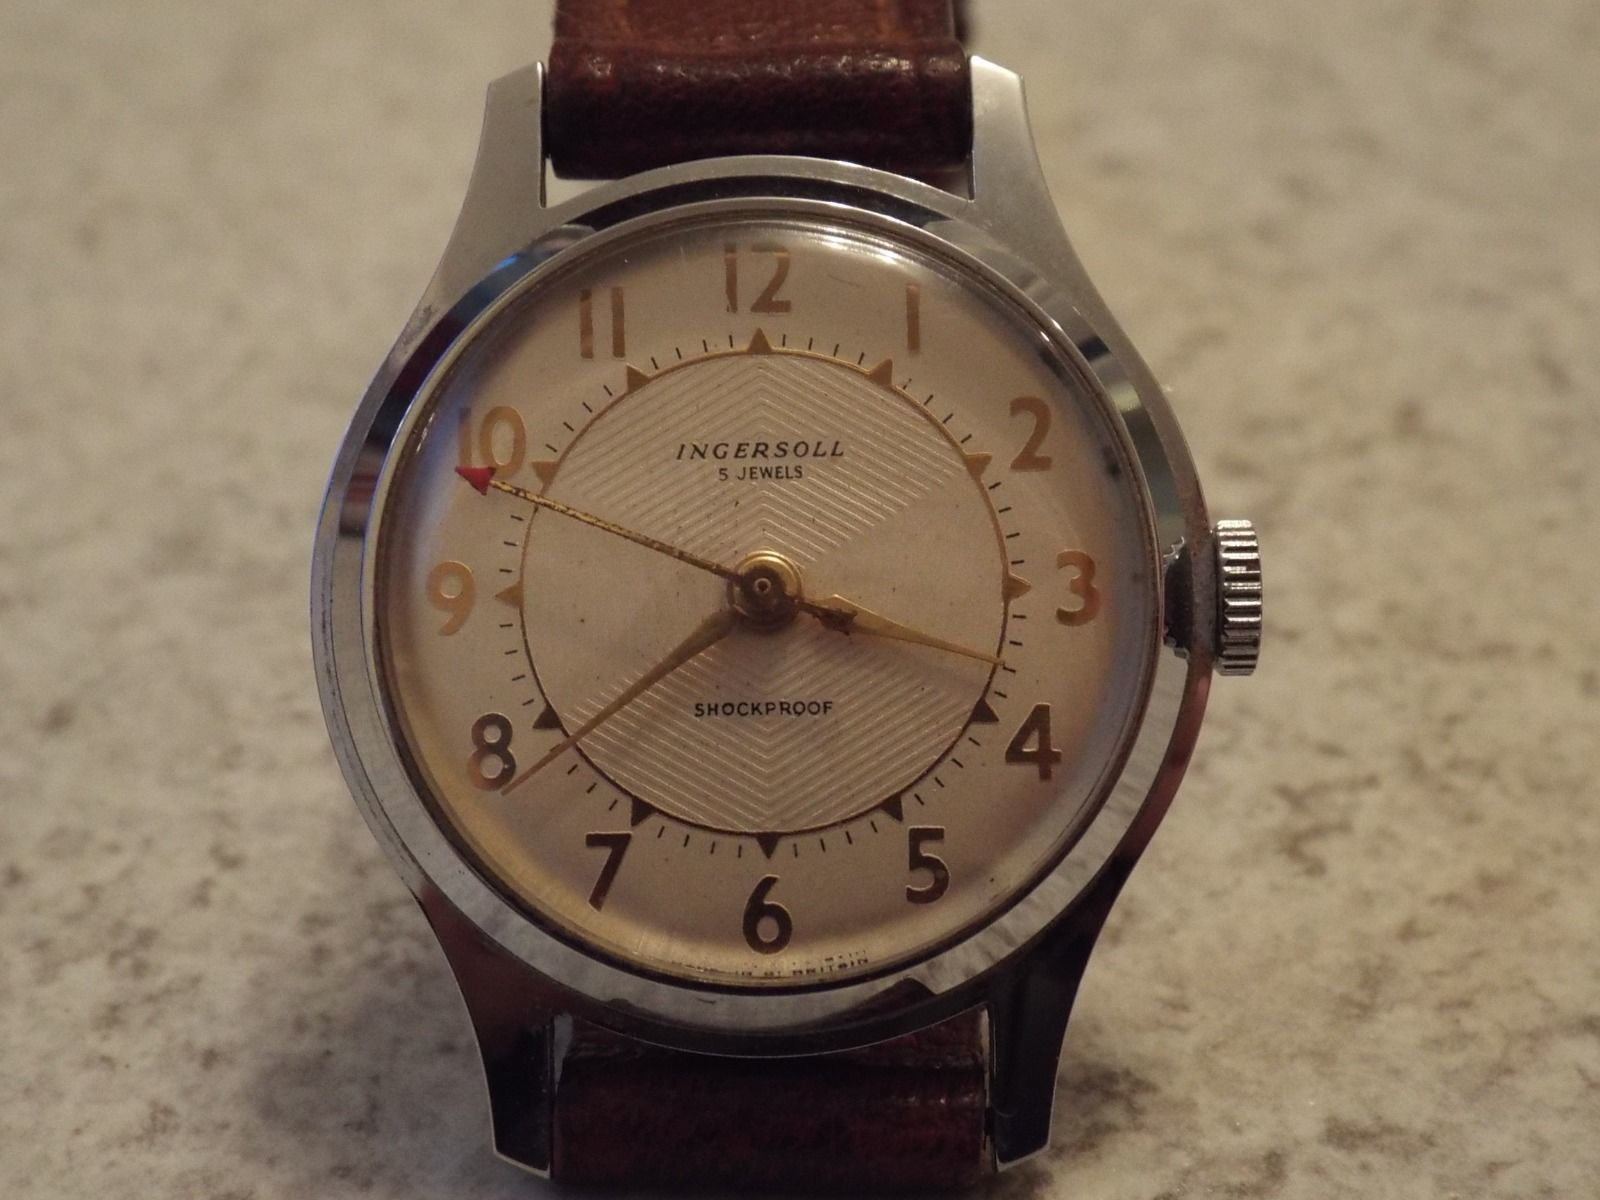 Amsterdam Vintage Watches - Jewelry & Watches Store